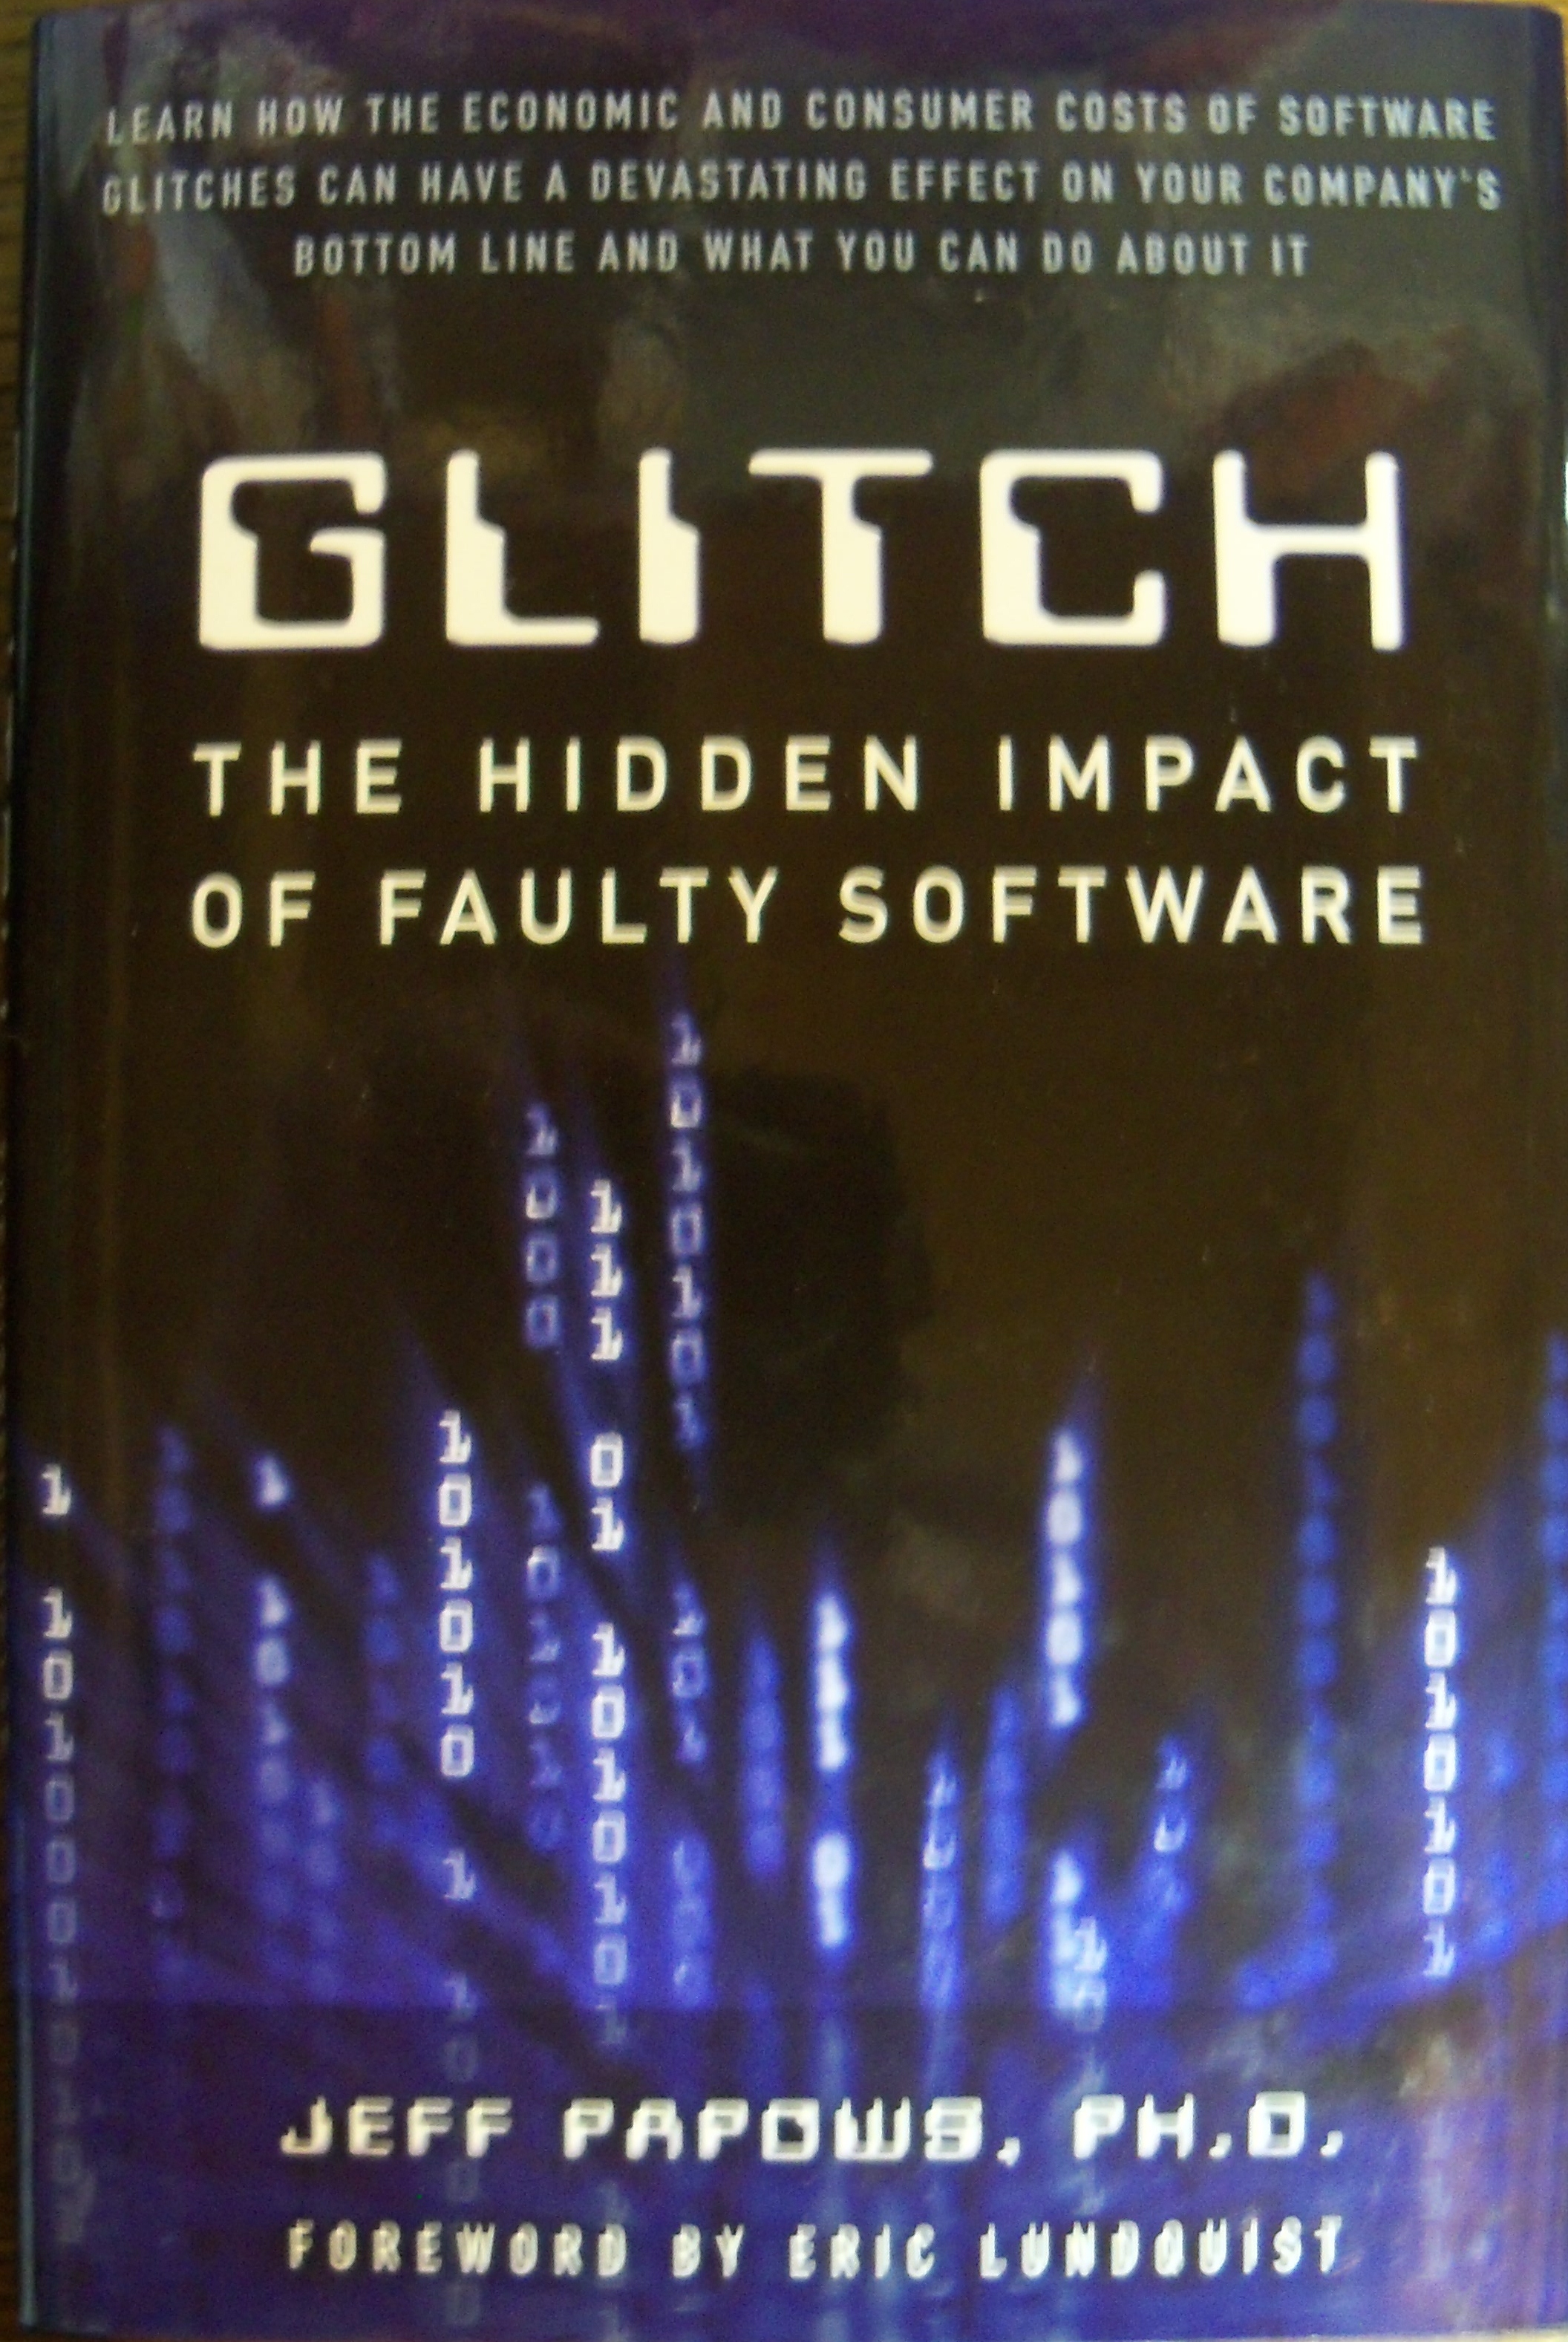 Glitch and recent system outages